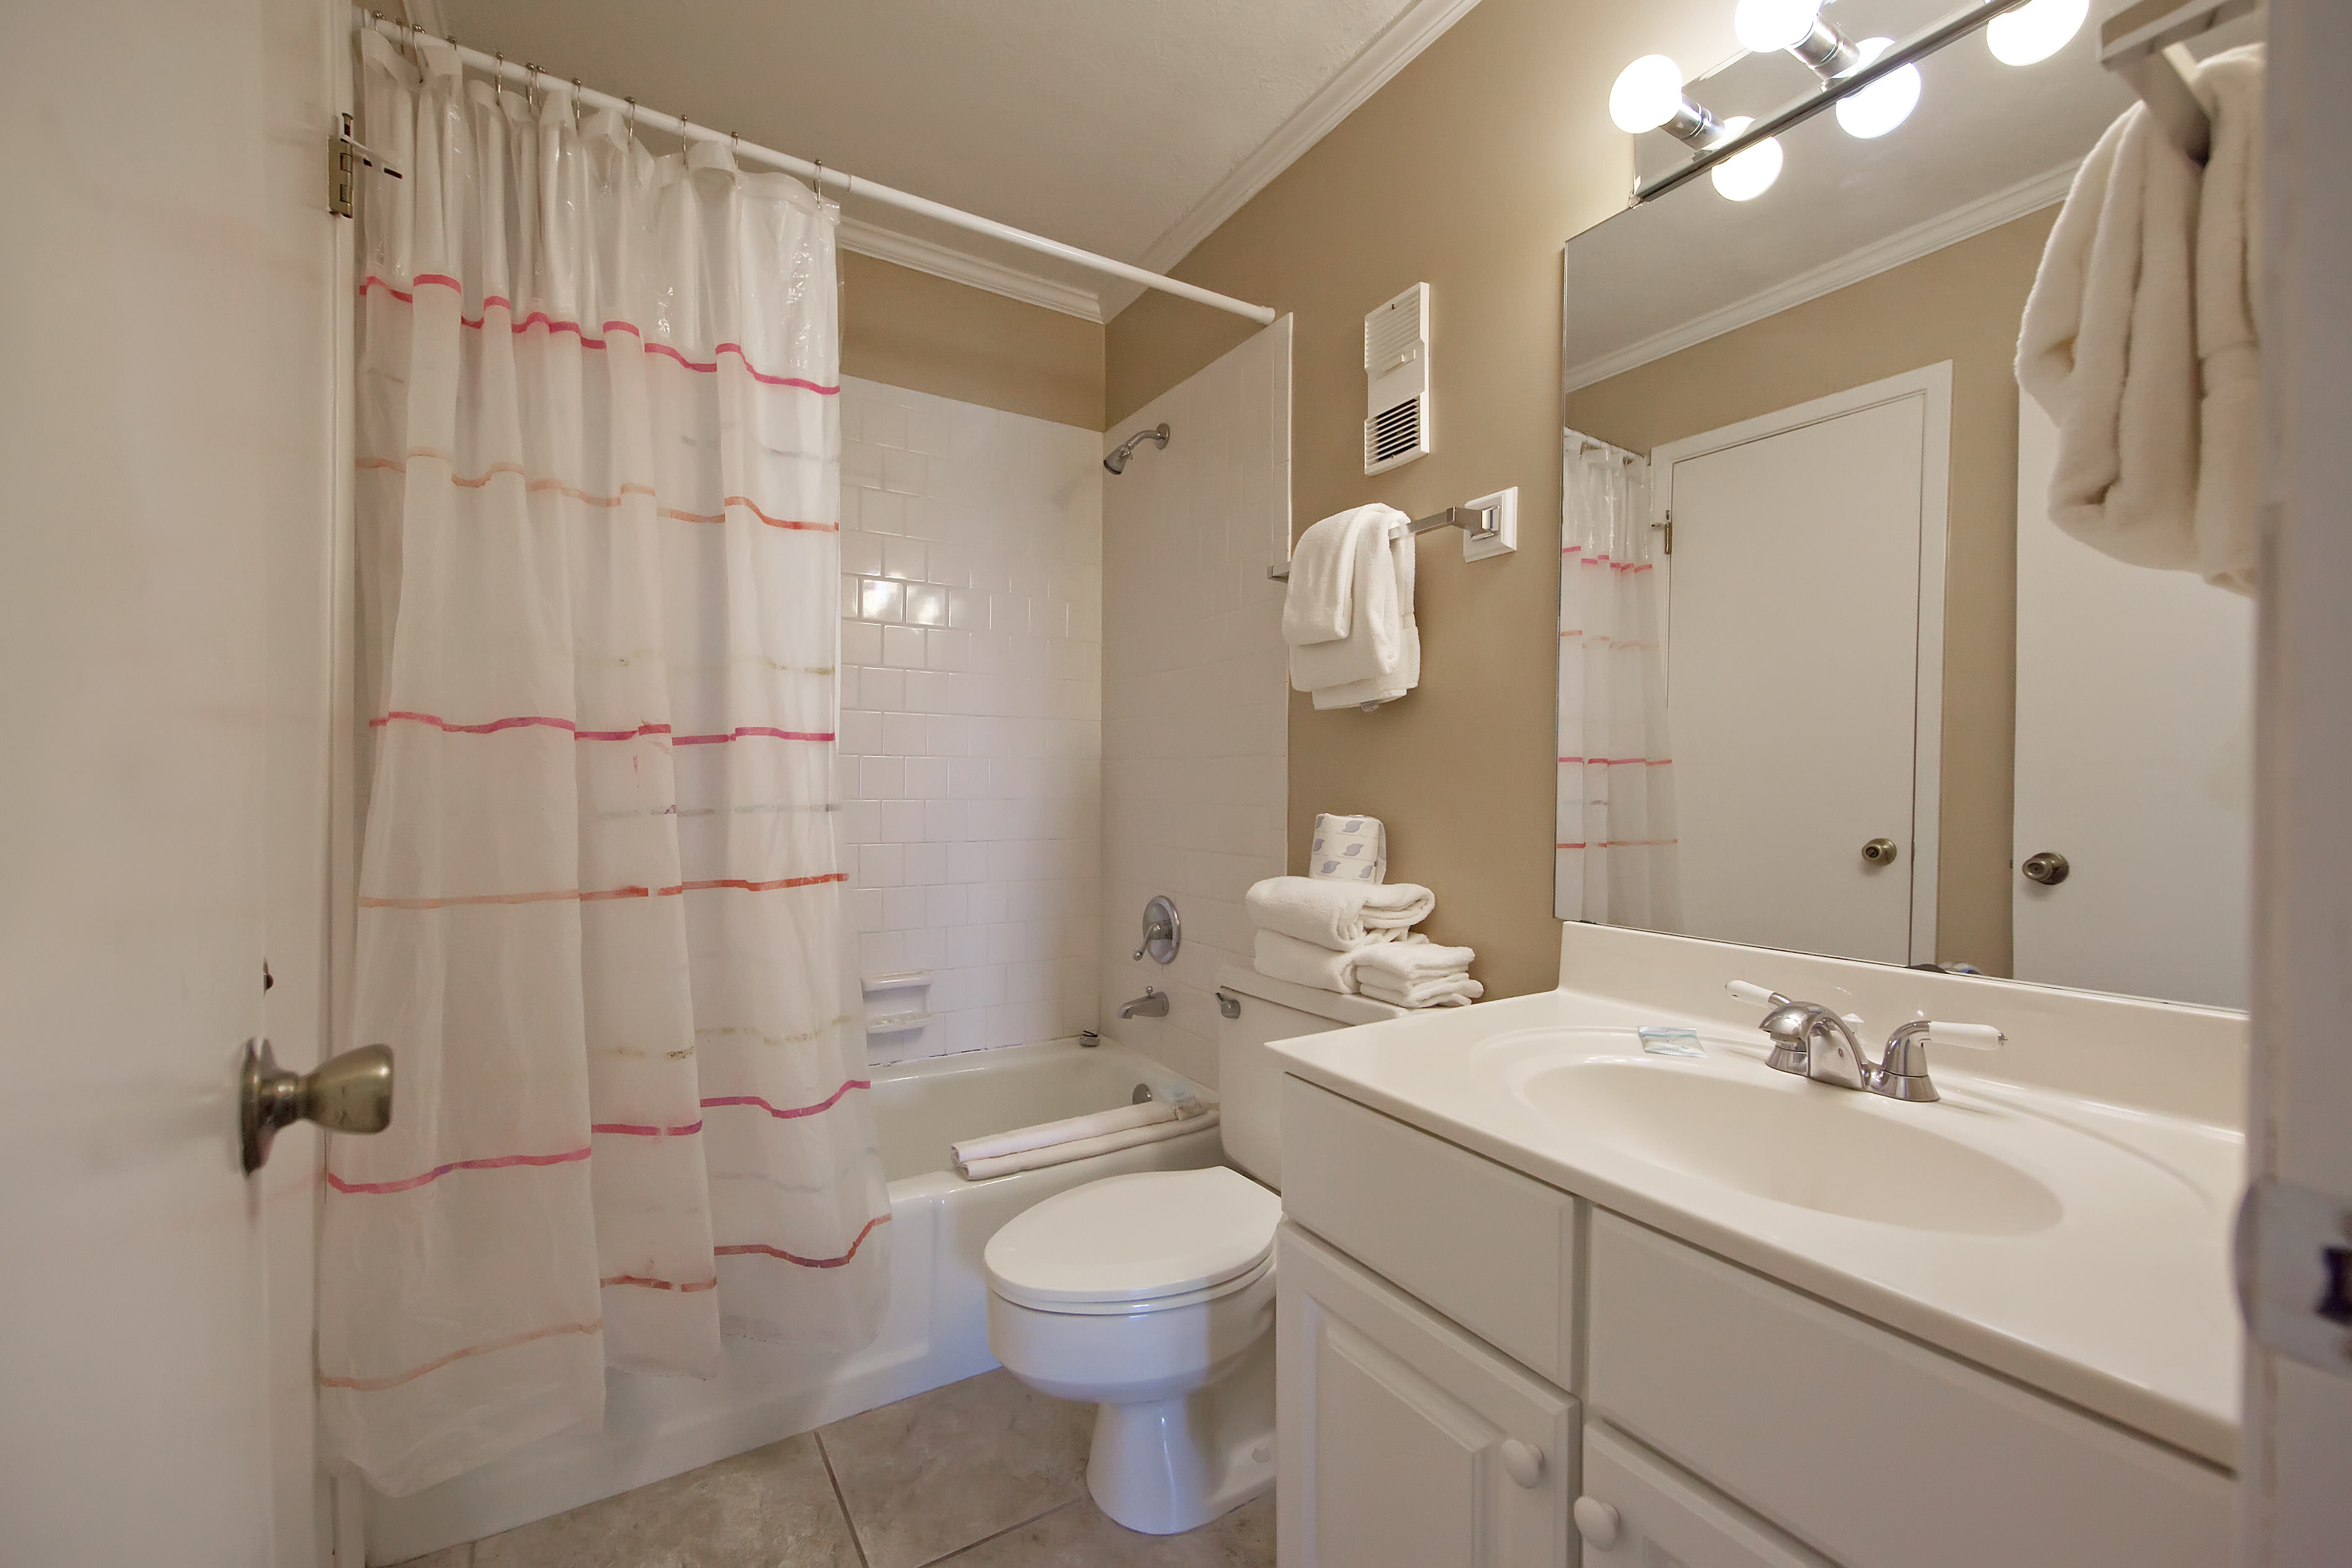 Holiday Surf & Racquet Club 310 Condo rental in Holiday Surf & Racquet Club in Destin Florida - #27